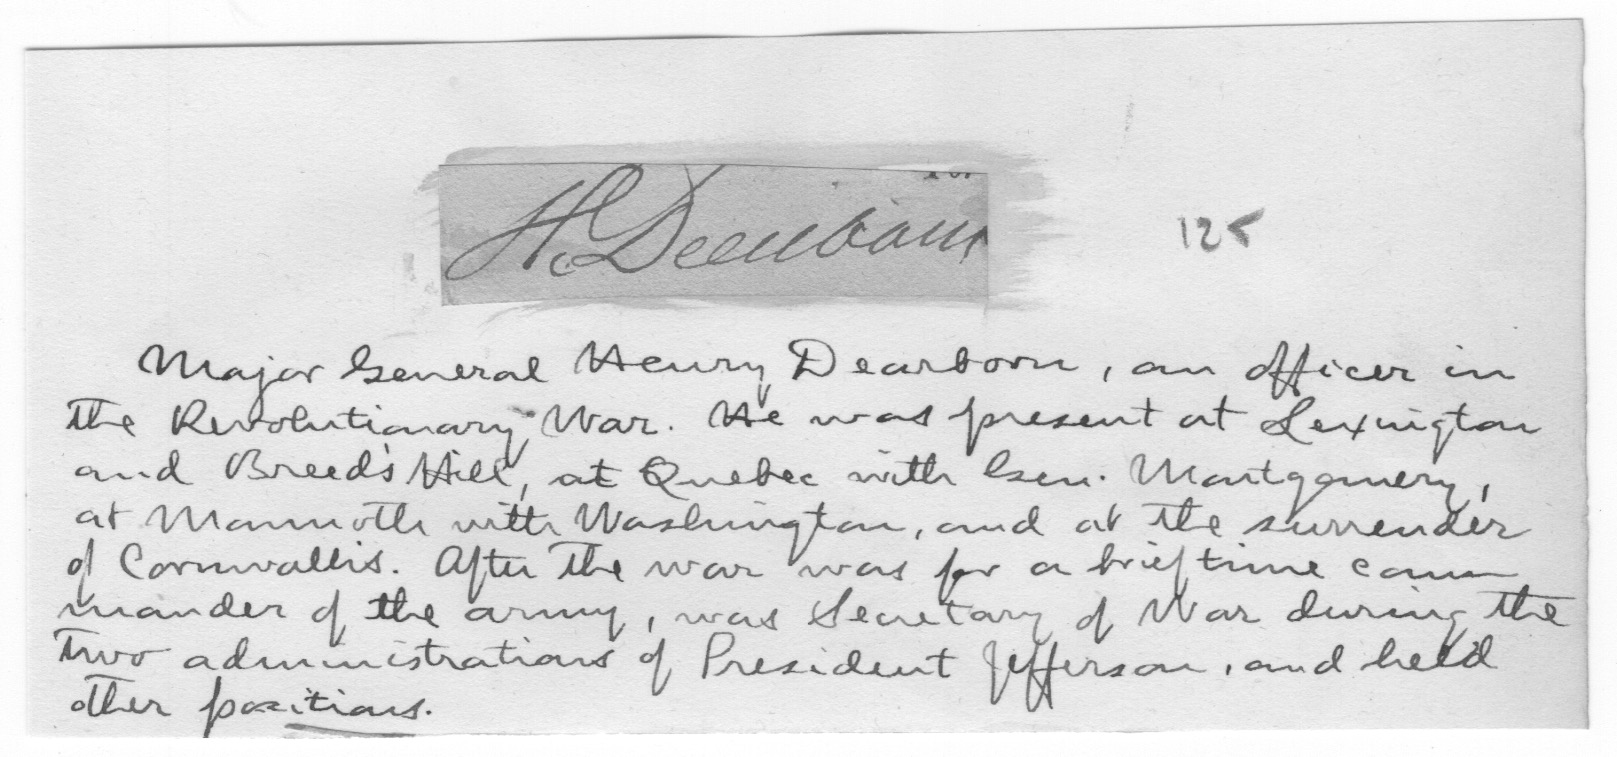 AUTOGRAPH OF HENRY DEARBORN. Henry Dearborn, General.